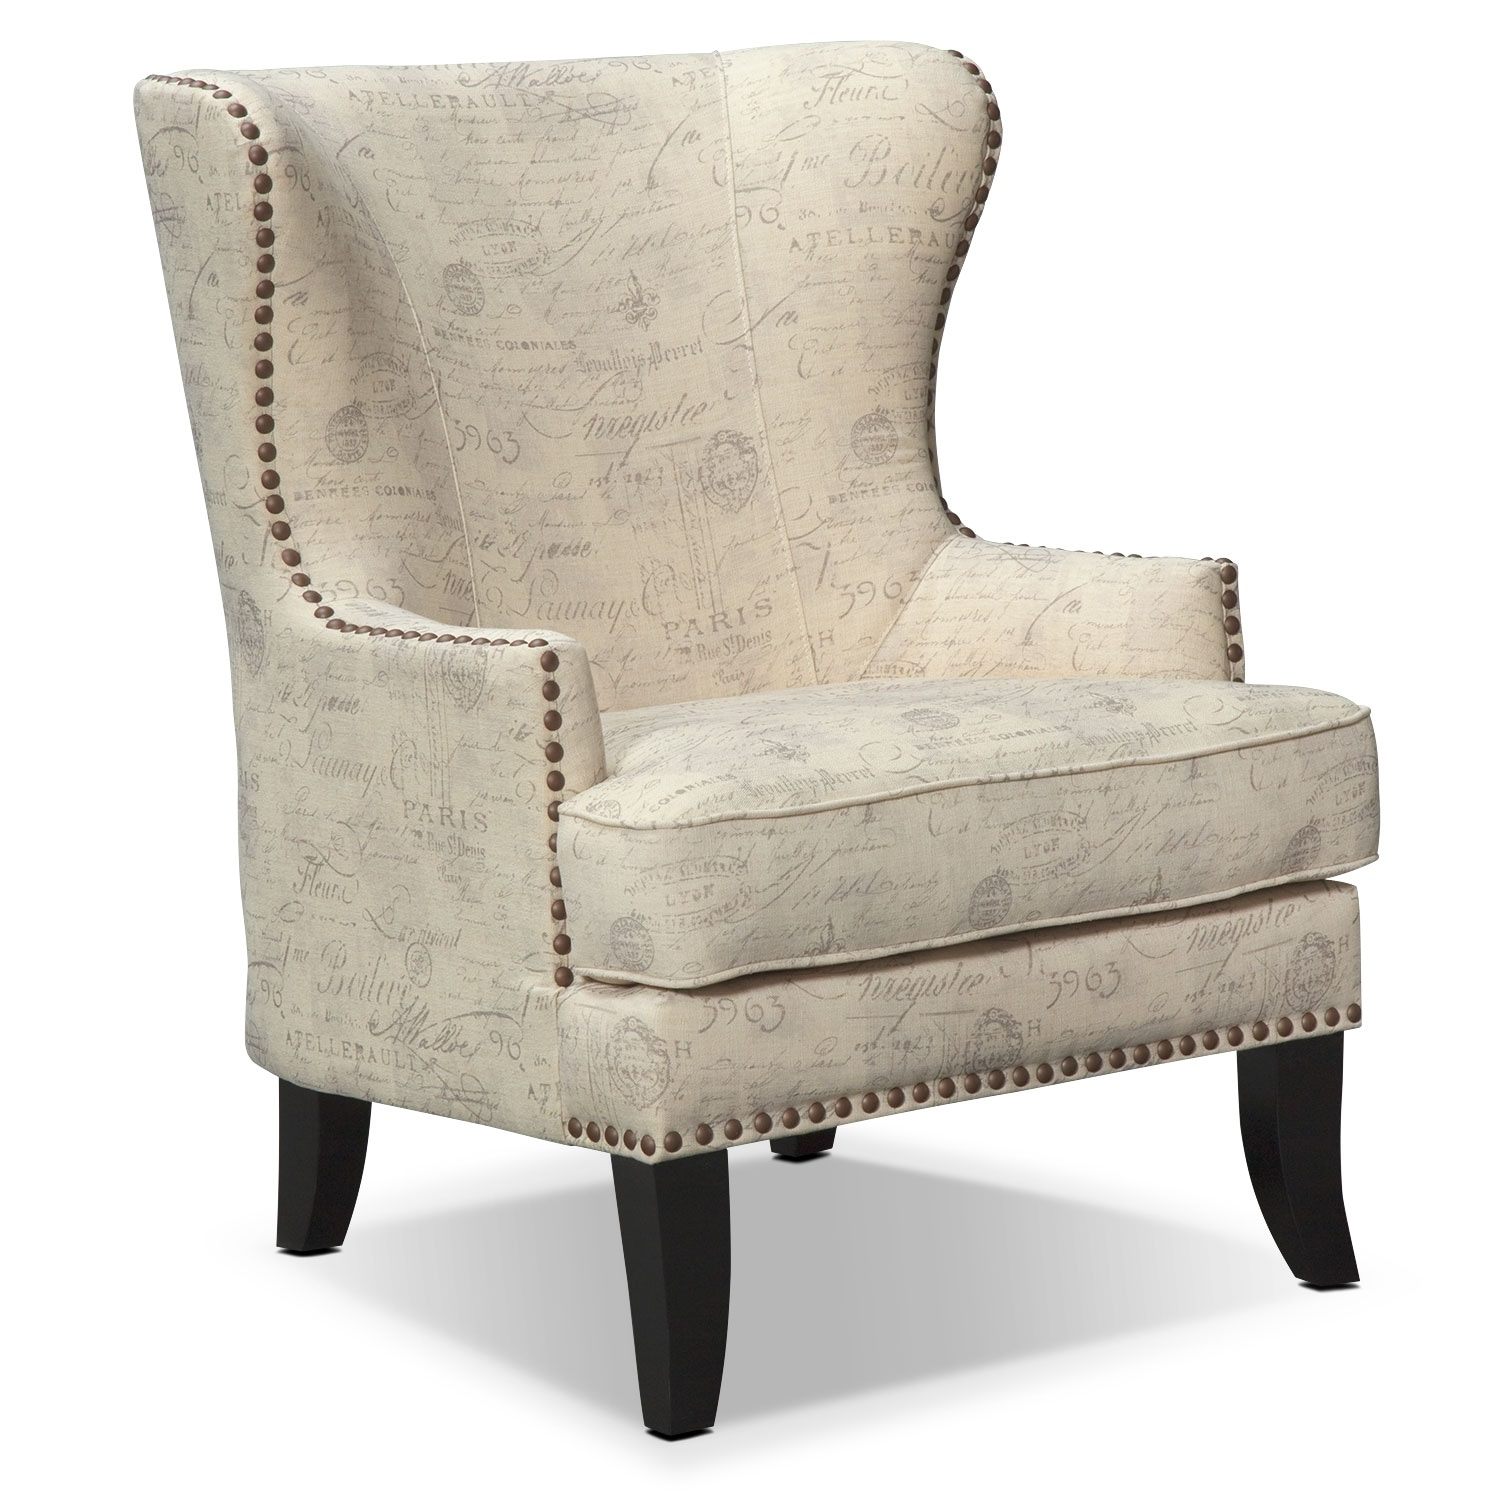 Living Room Chairs & Chaises | Value City Furniture | Value City ...